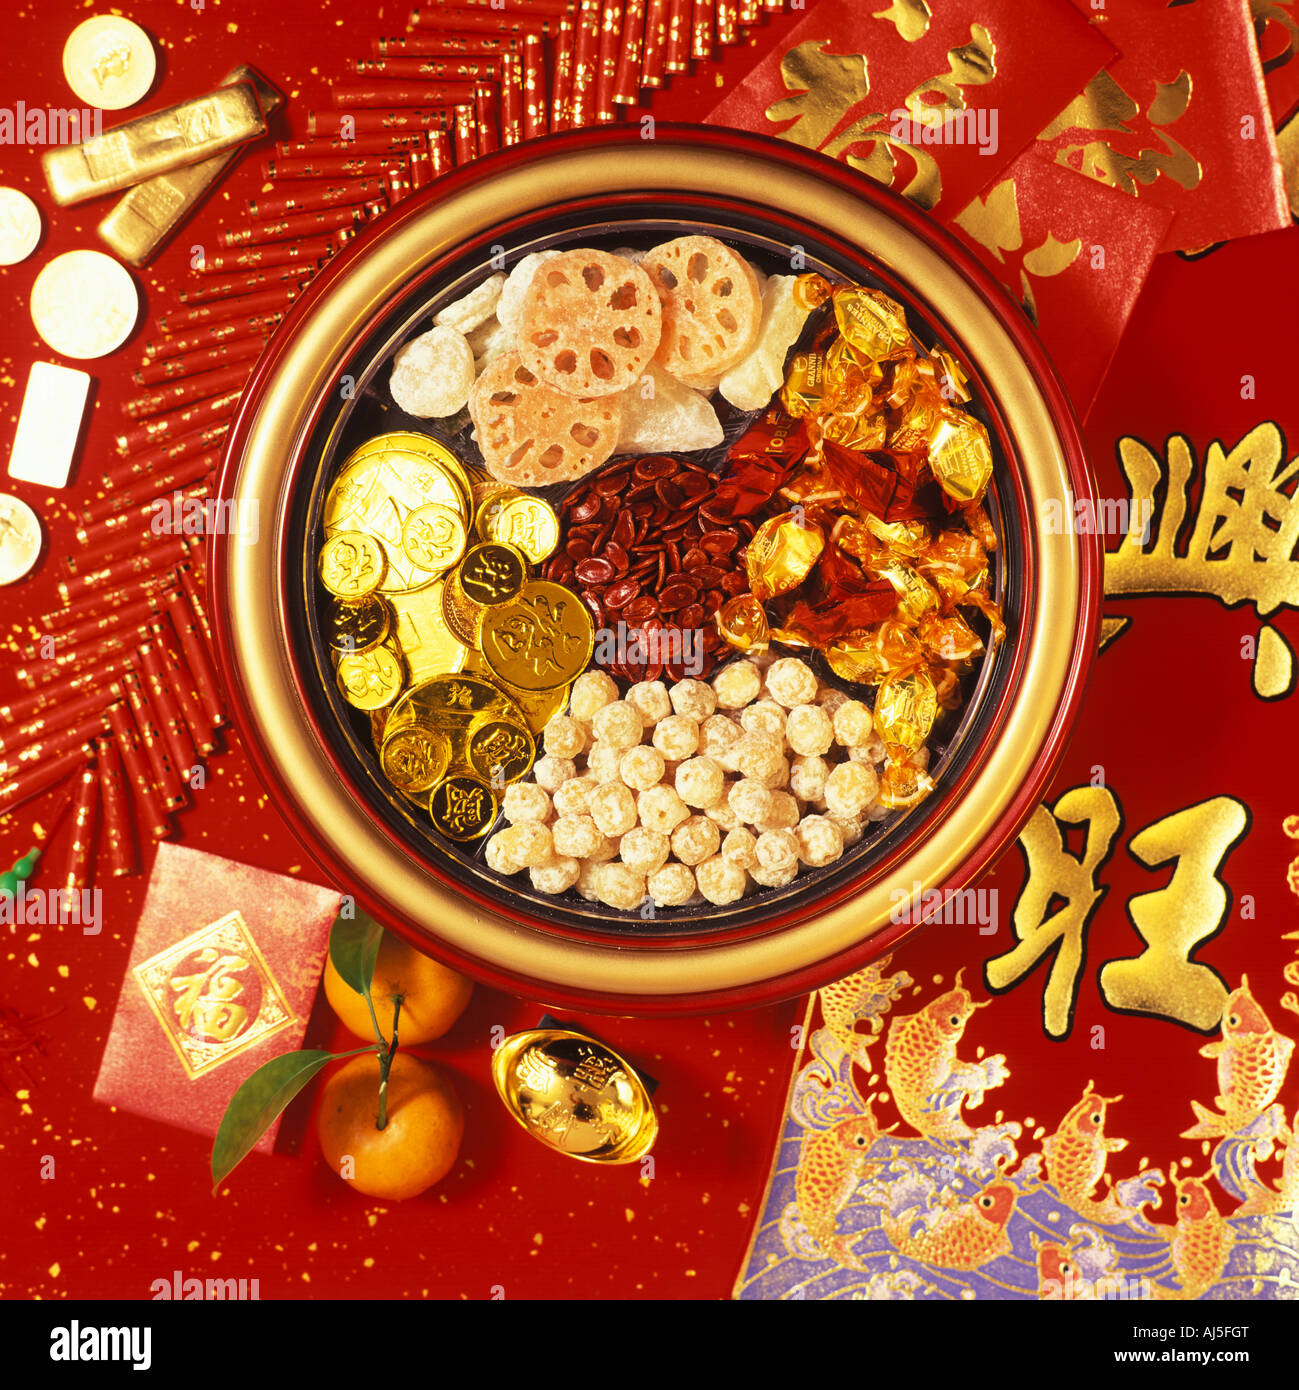 Candy box and decoration for Chinese New Year Stock Photo ...